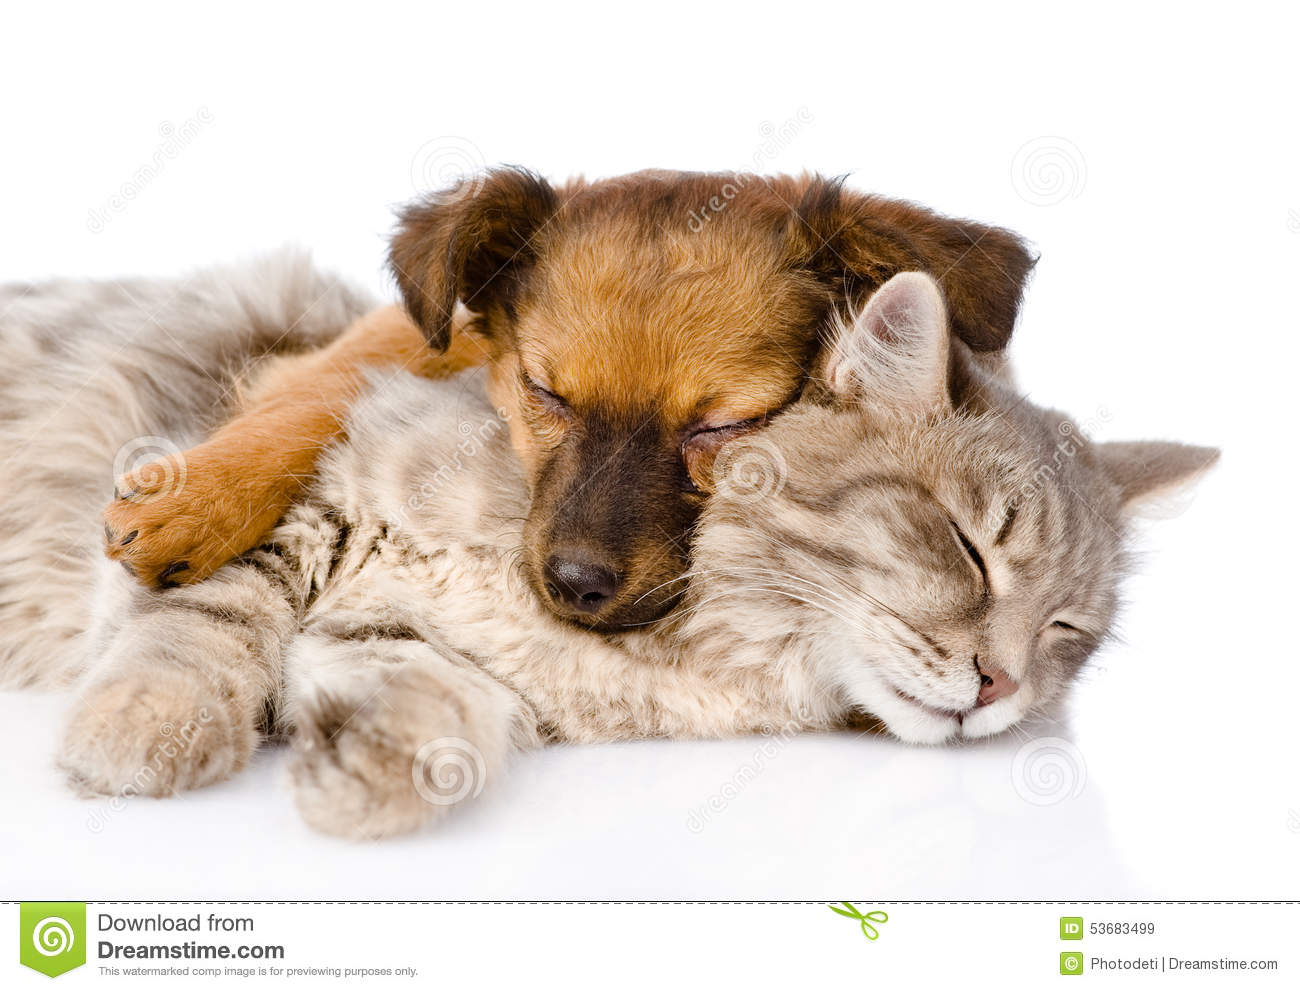 Cat and dog sleeping together. isolated on white background